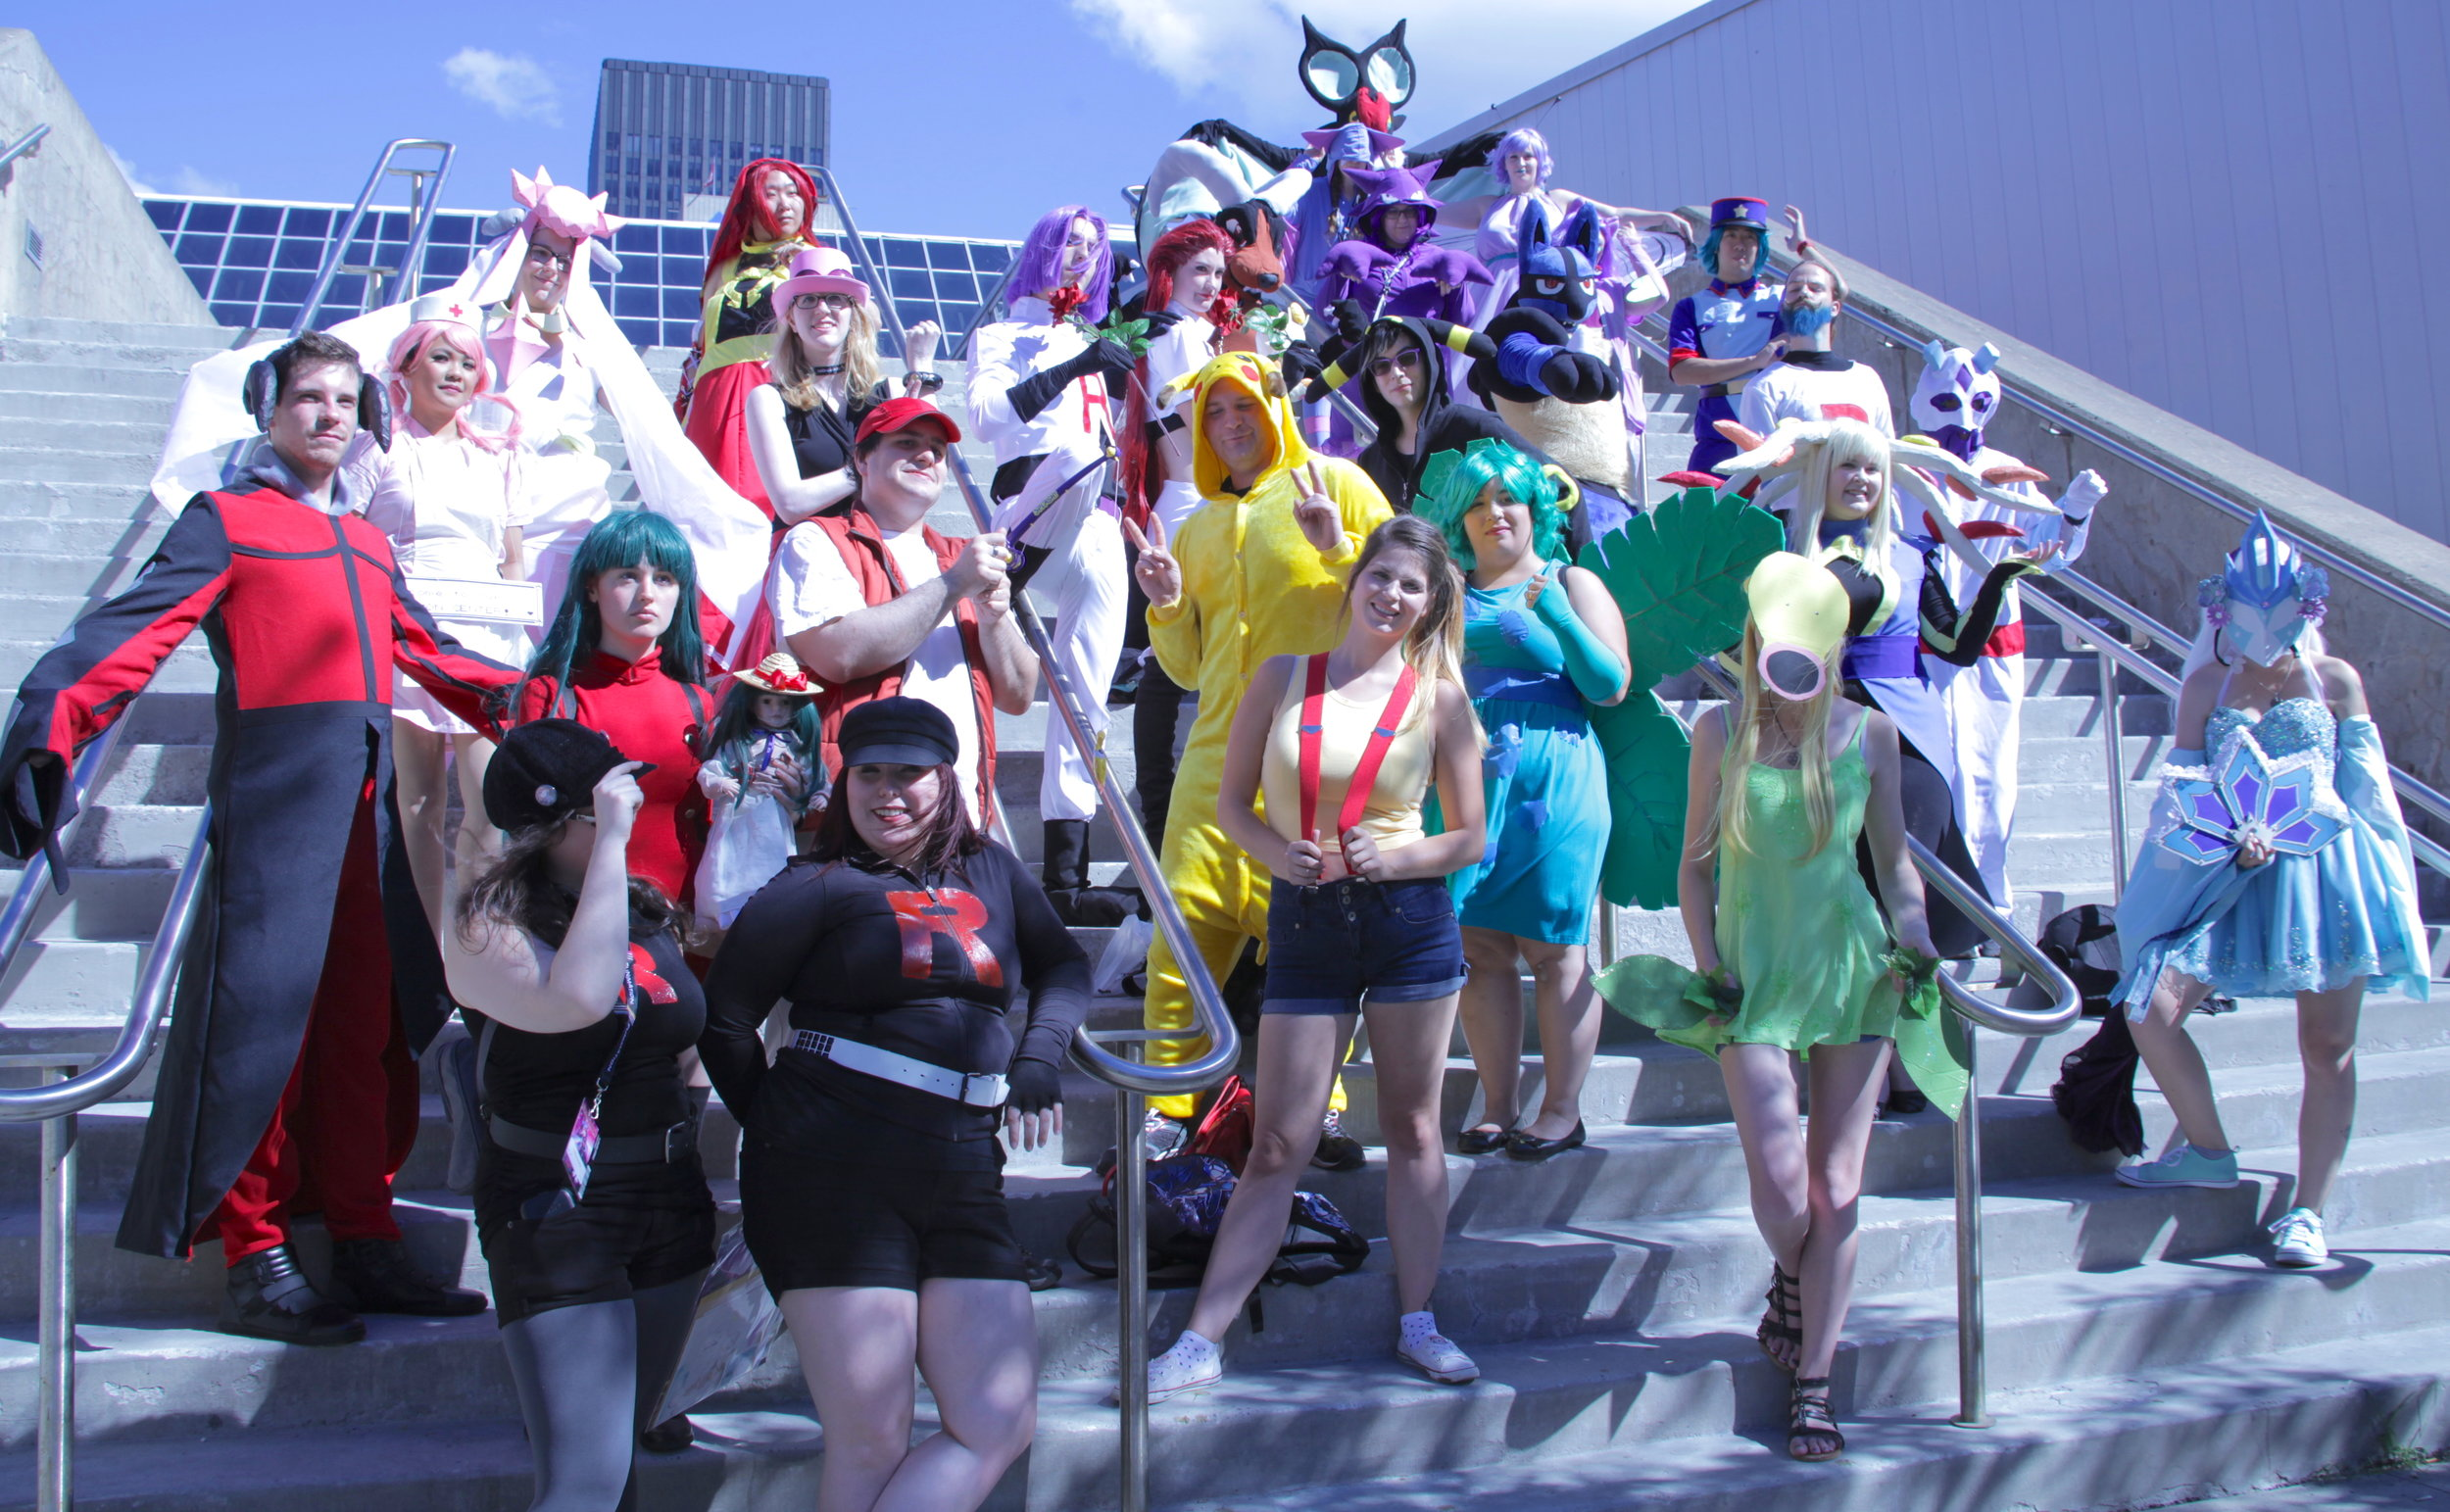 The Otakuthon Pokémon cosplay photo-shoot, 2017